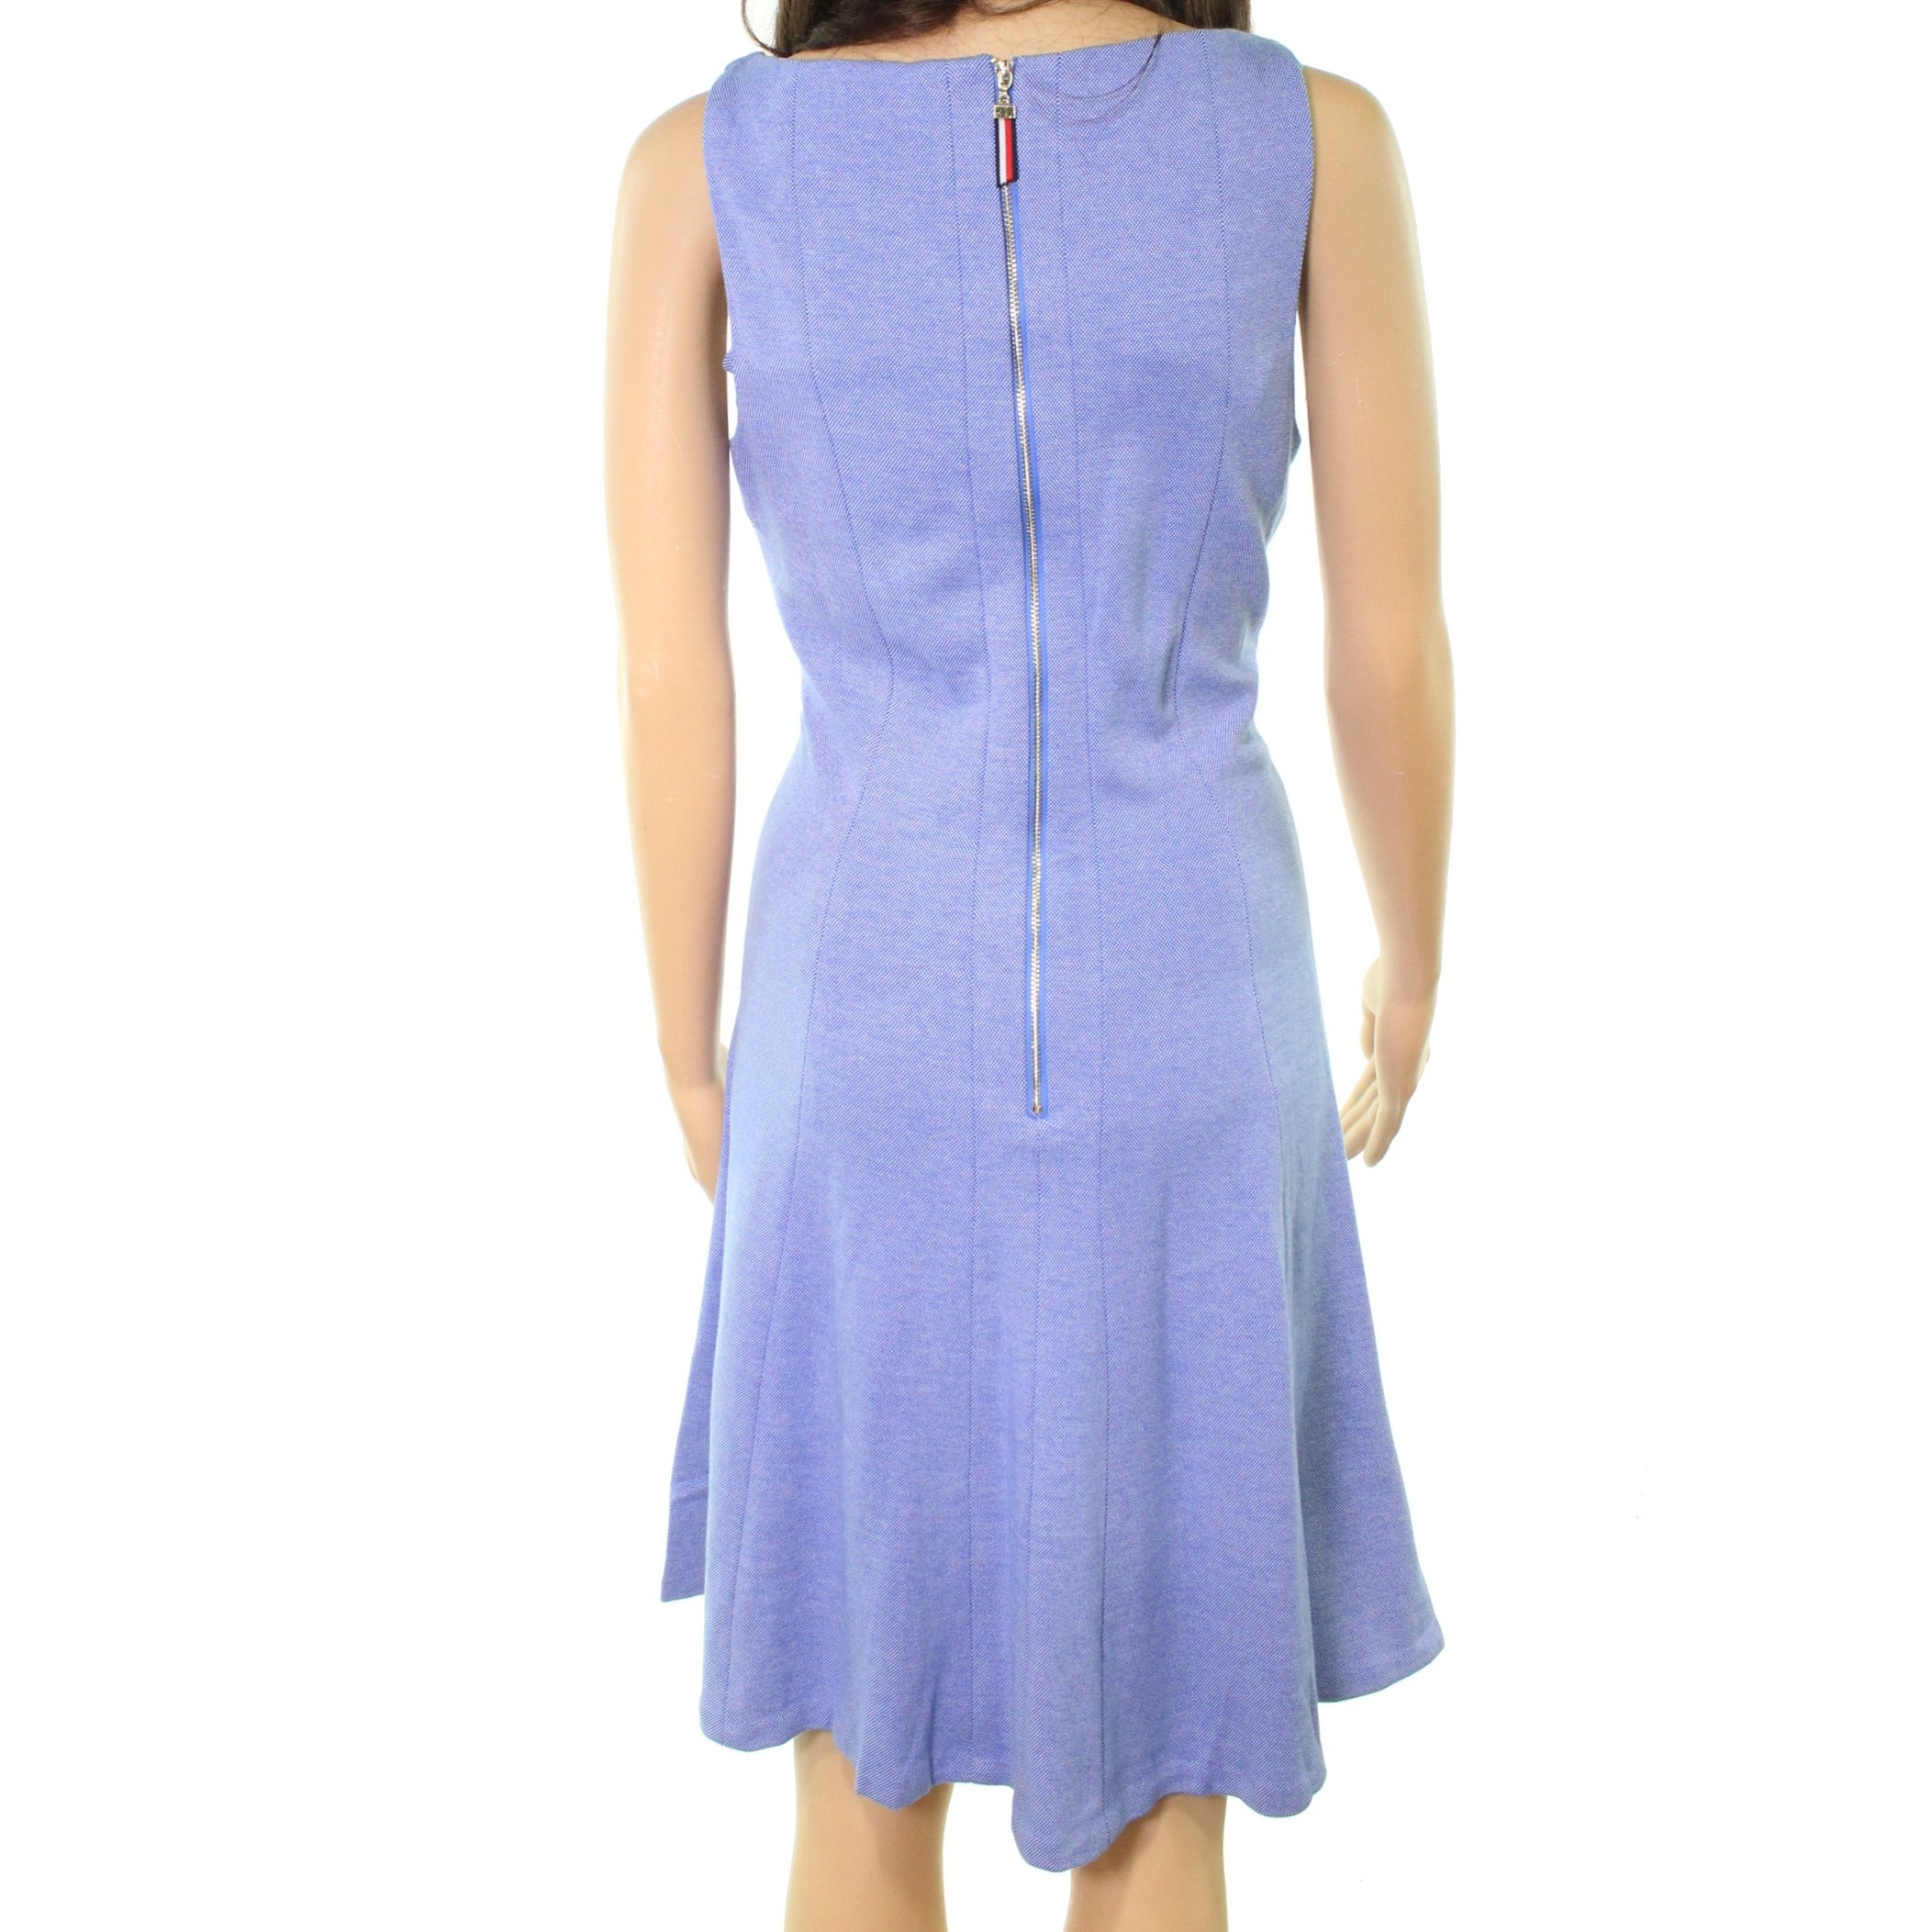 1eaa04aaa2 Shop Tommy Hilfiger NEW Blue Women s Size 12 Seamed Knit Skater Dress -  Free Shipping Today - Overstock - 21595056